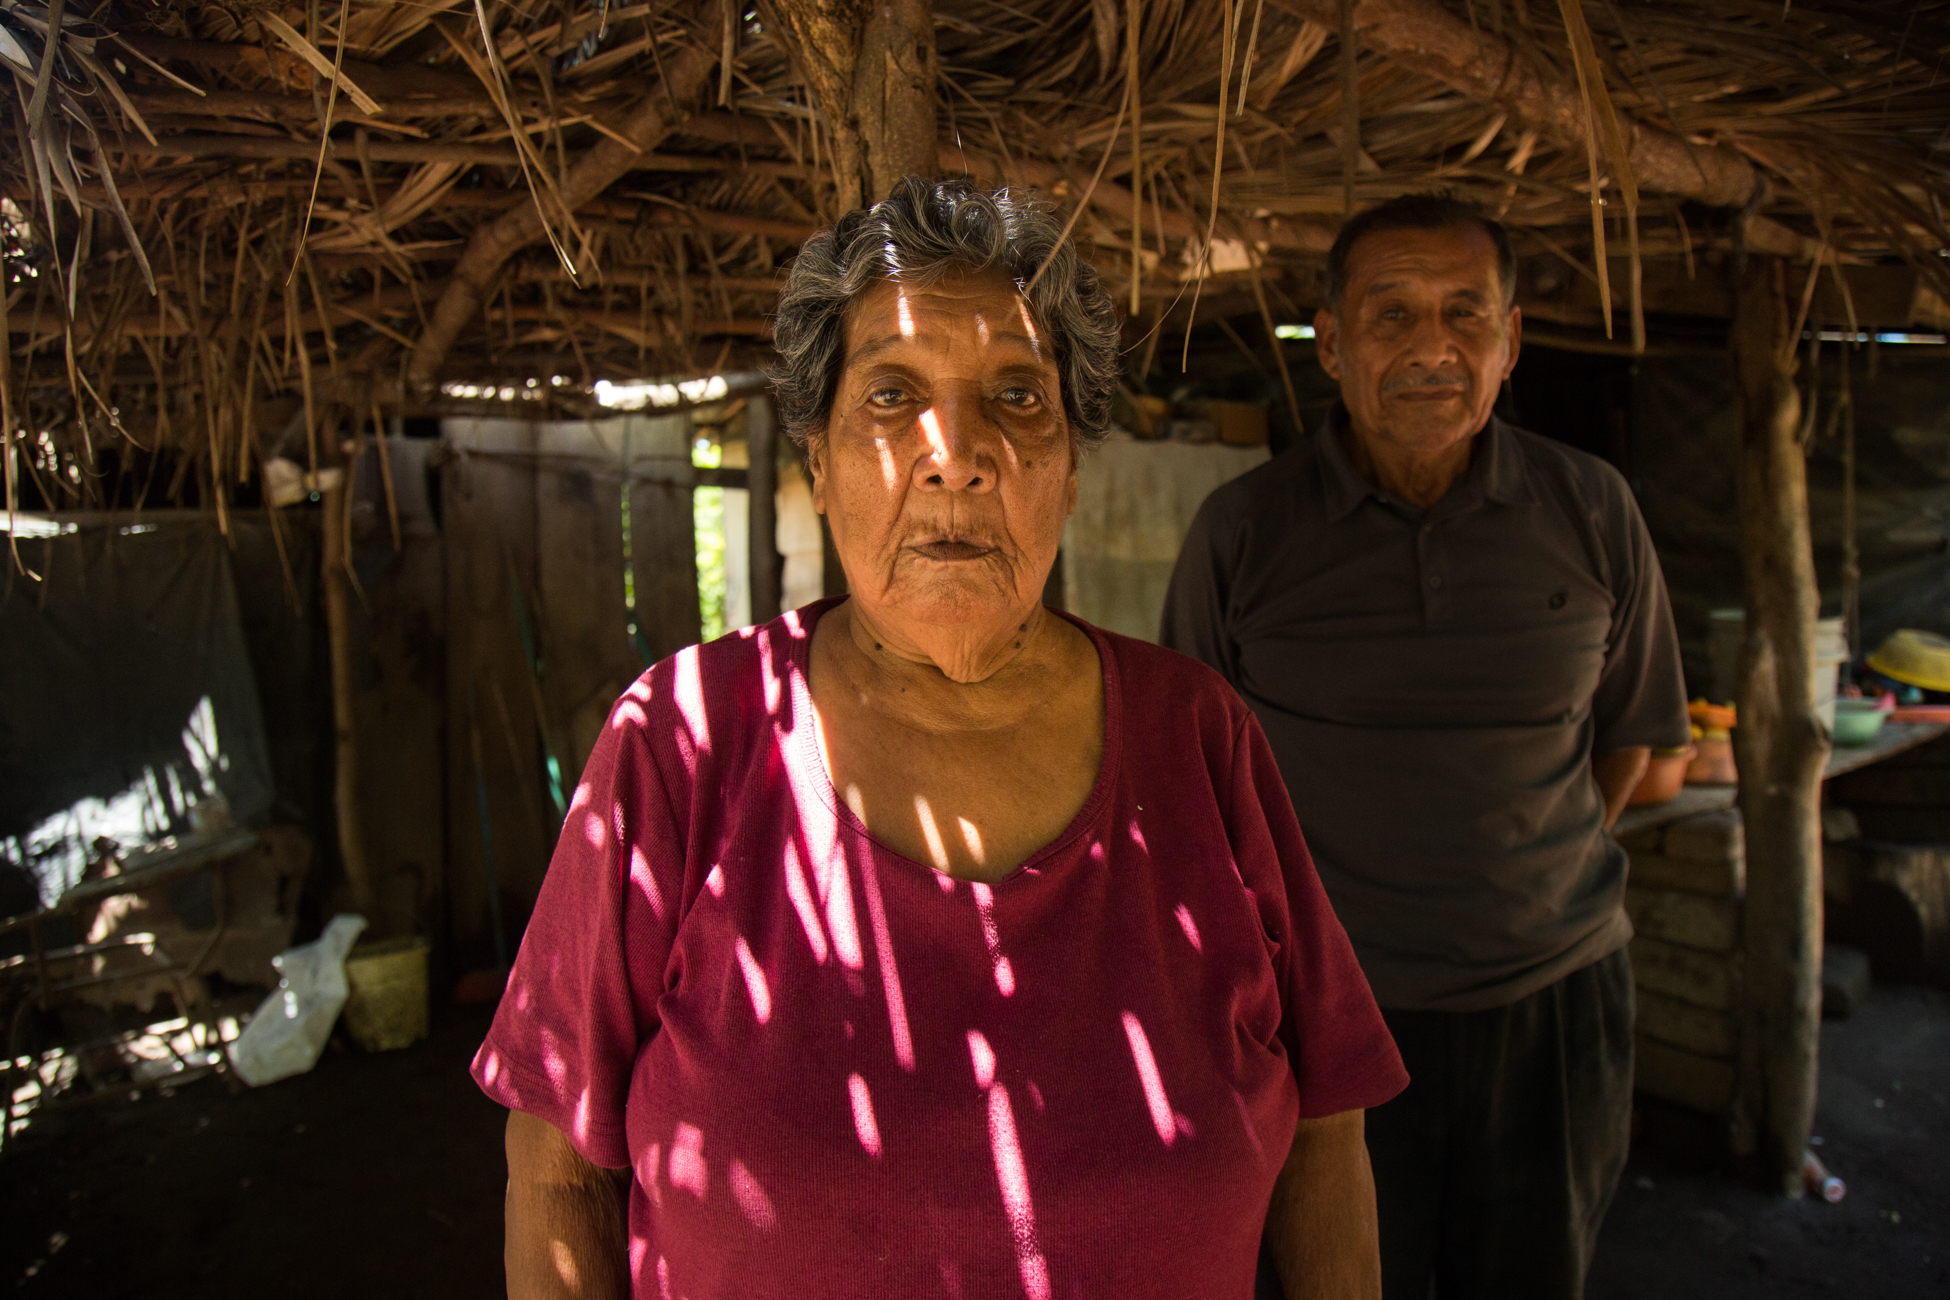 Egdomilia Mora Hernandez at home with her husband. A native of Ometepe Island, she promises to defend her land to the death if the government forces her and her family off of it due to construction of the Interoceanic Canal.